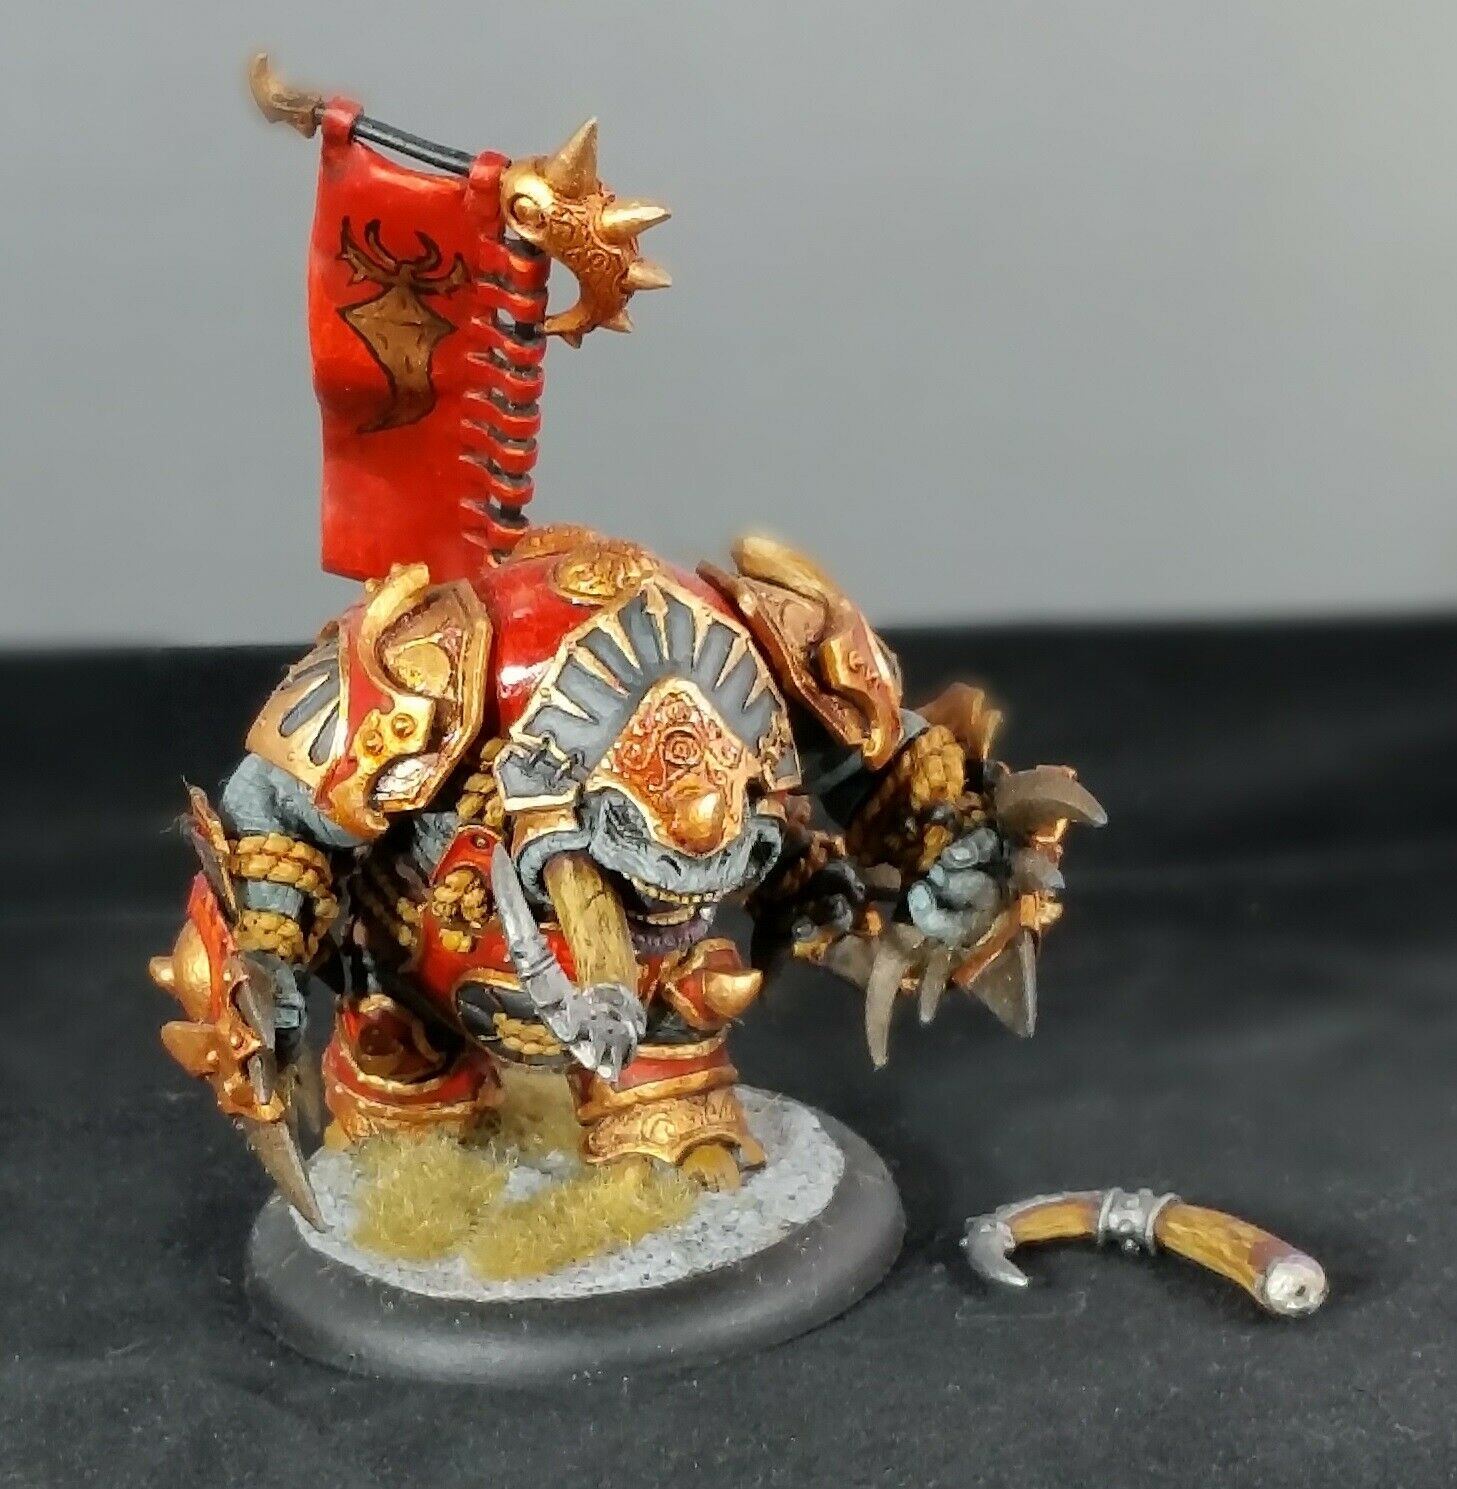 Privateer Press Hordes Skorne Extreme Titan Gladiator Heavy Warbeast Painted